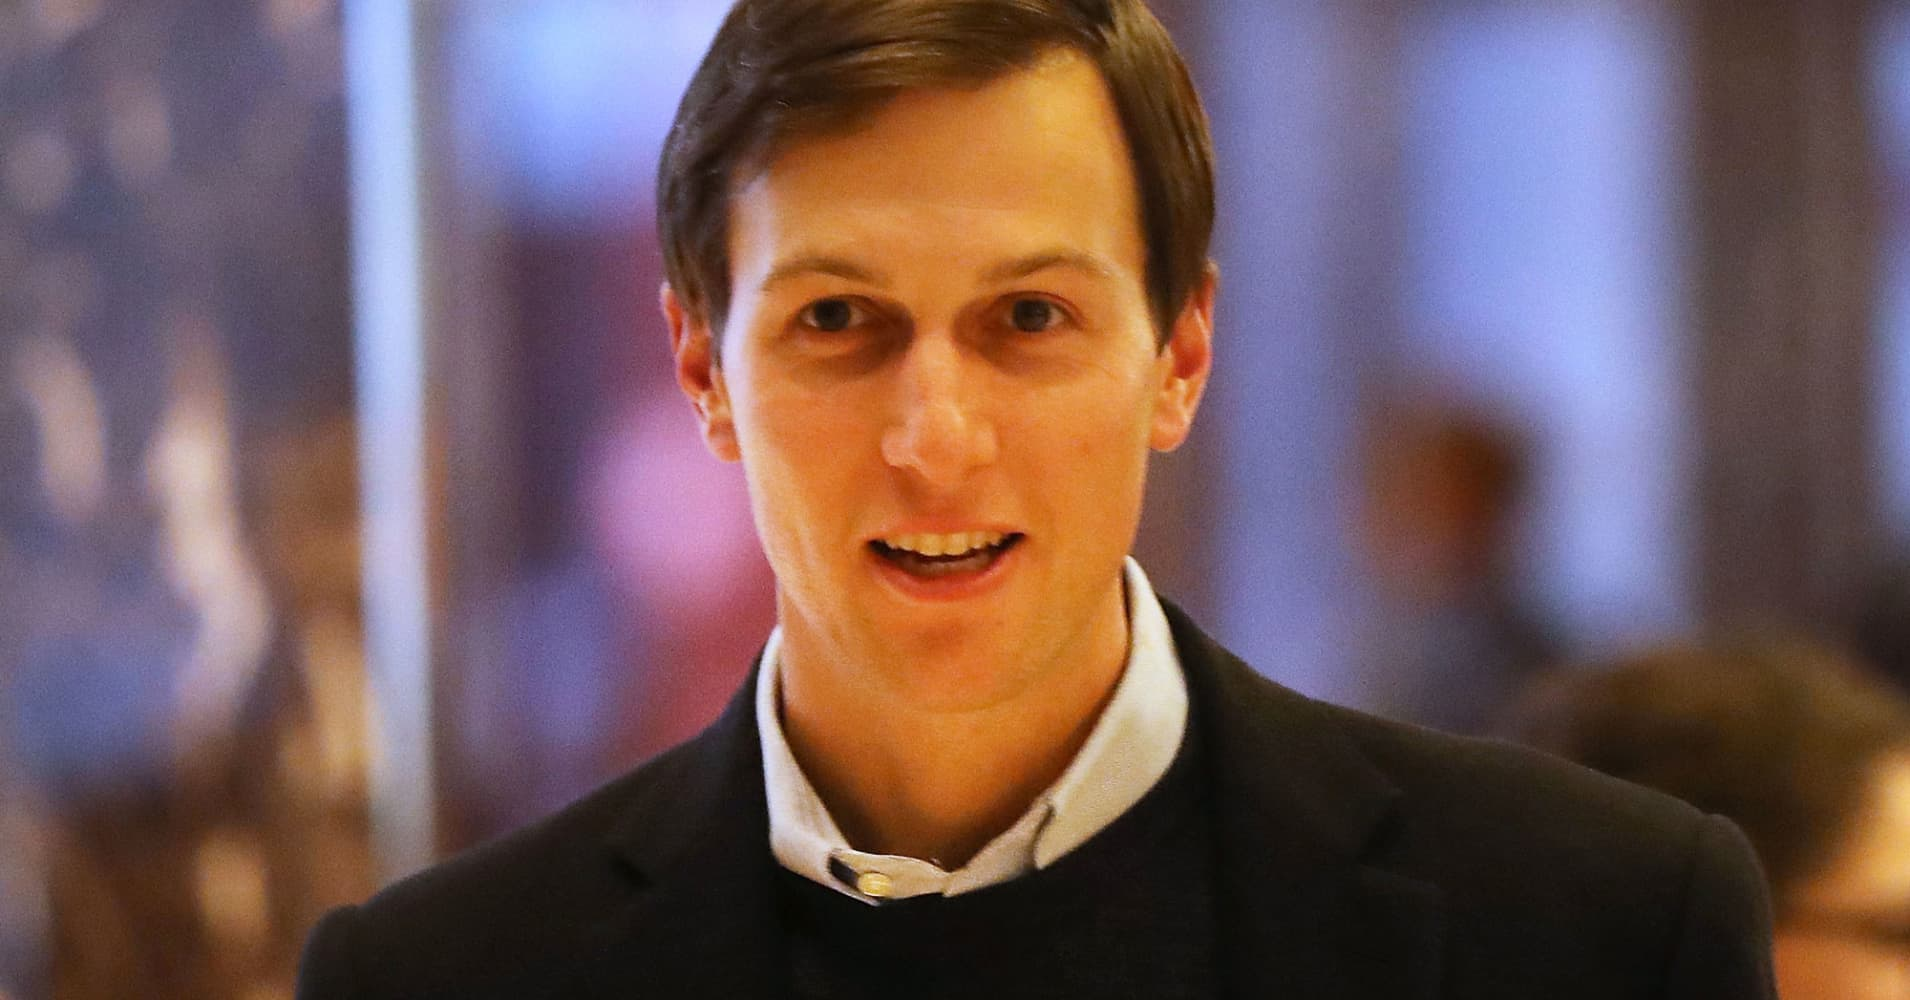 Kushner: Government Must Move Past Floppy Disks and Y2K and Unleash the Private Sector